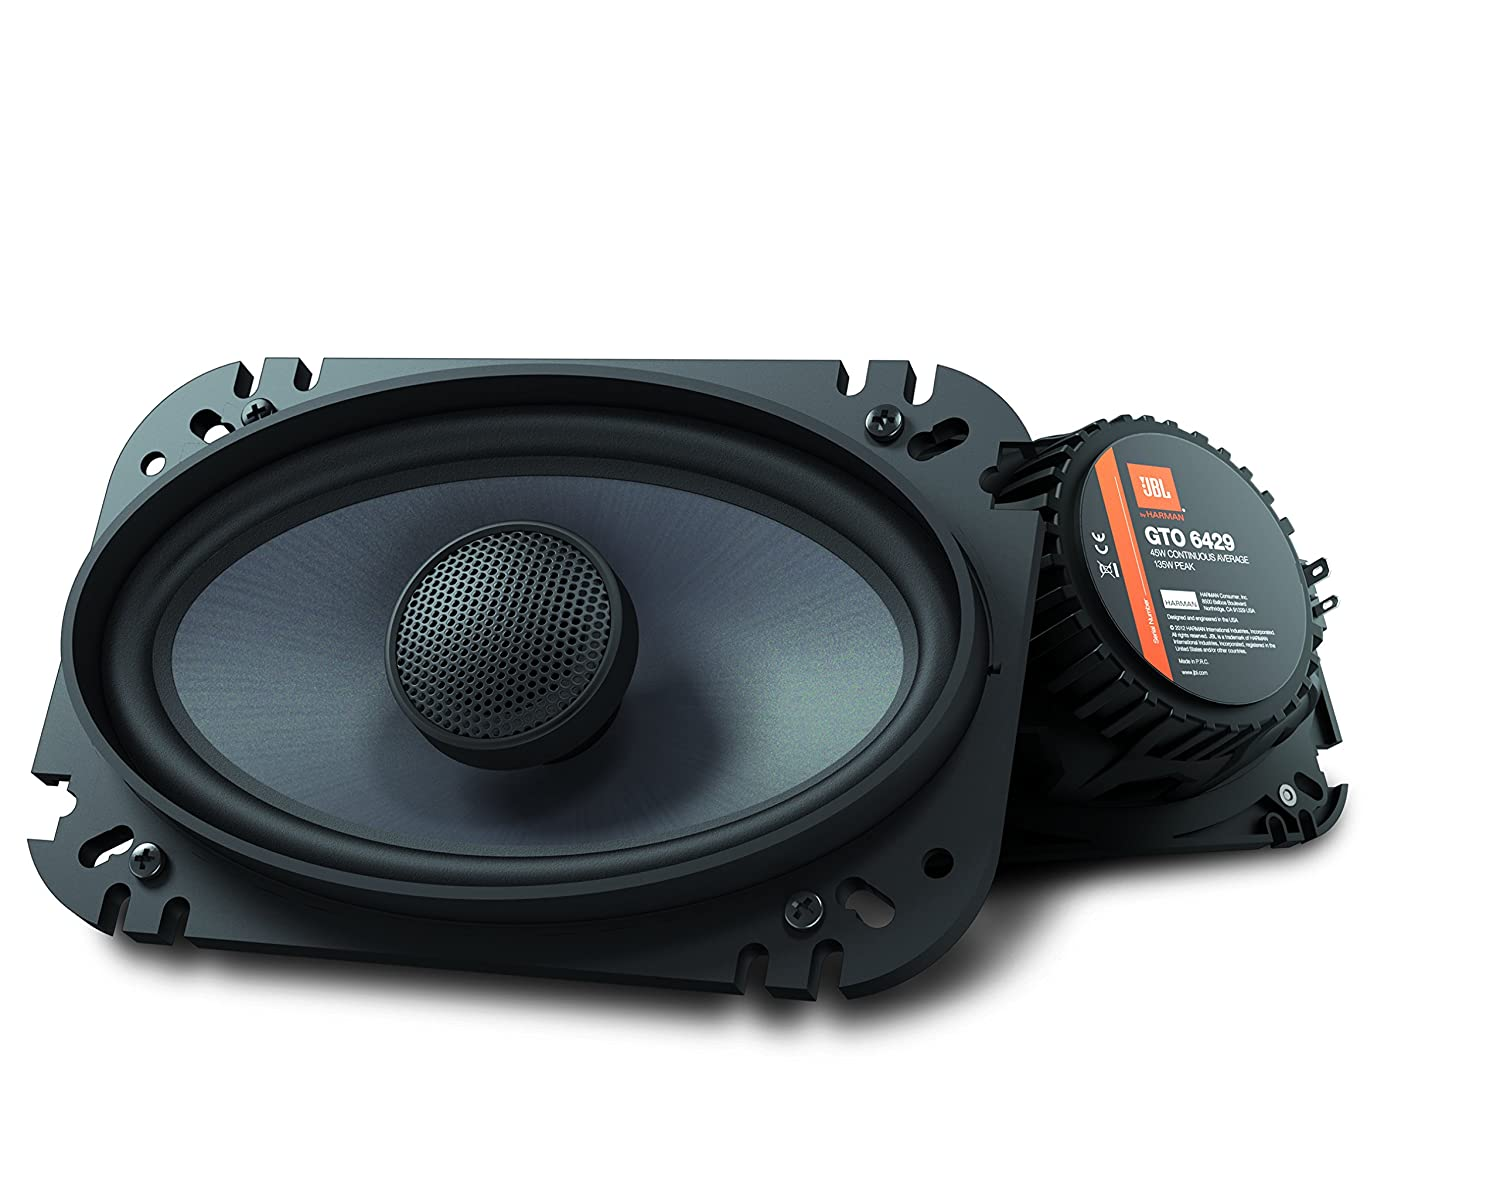 JBL GTO6429 Premium 4 x 6 Inches Co-Axial Speaker - Set of 2